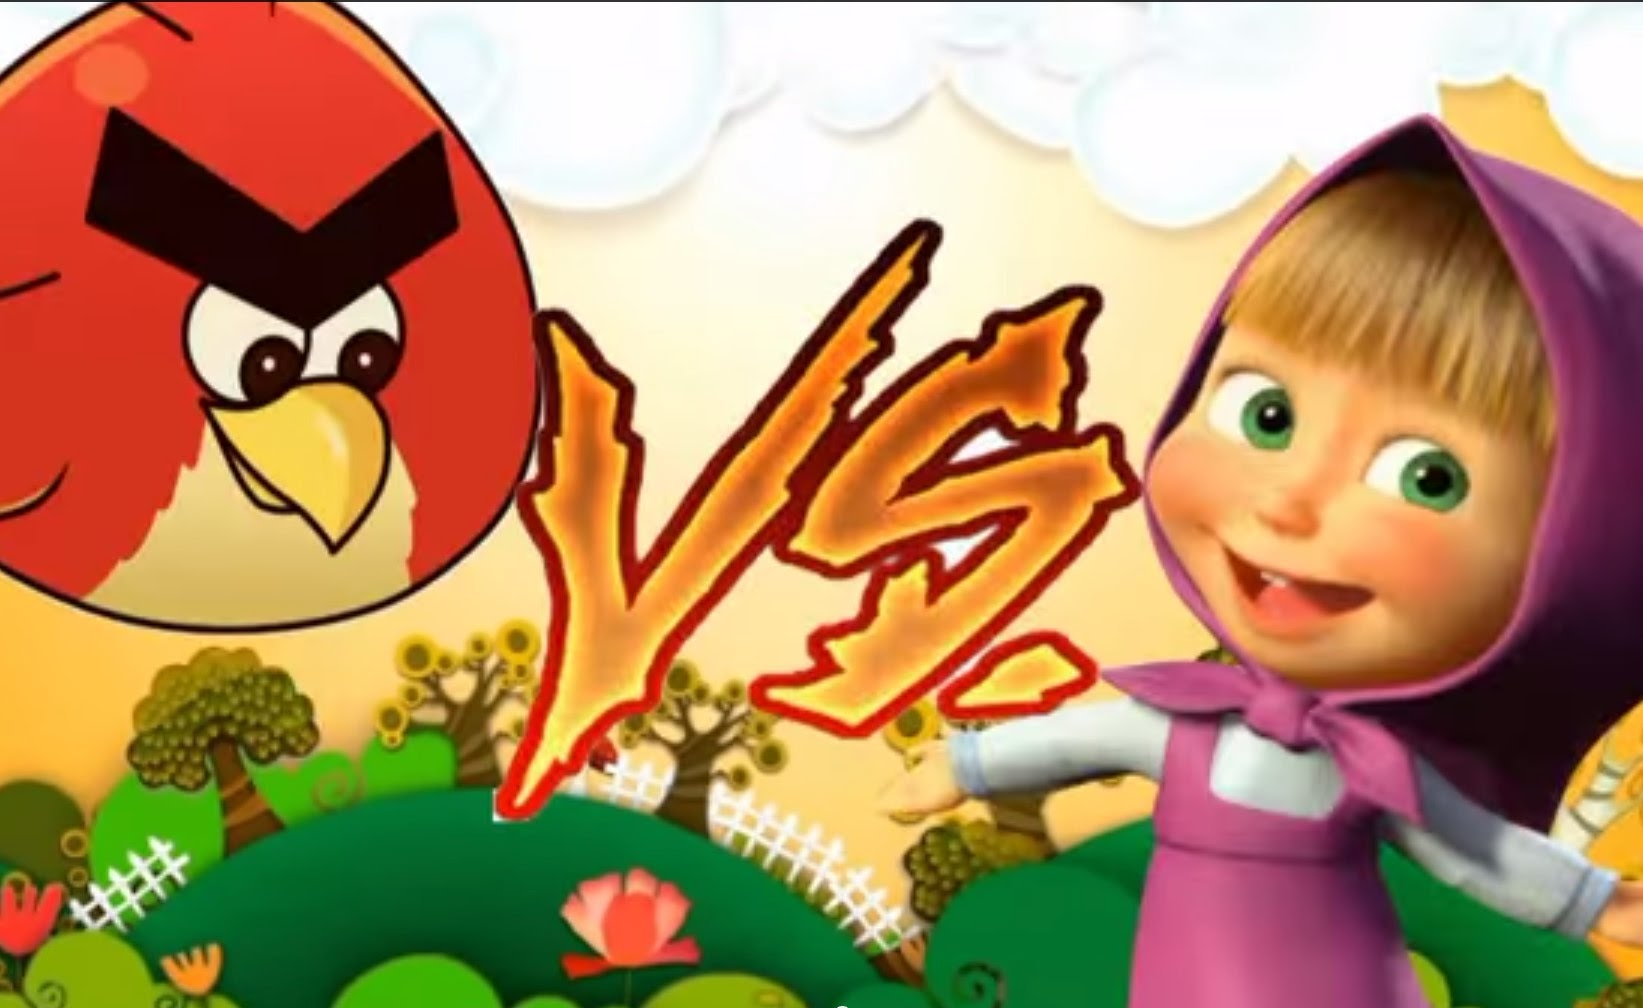 Clover Coloring Pages - 動畫片 Angry Birds Cartoon Masha and the Bear Masha Vs